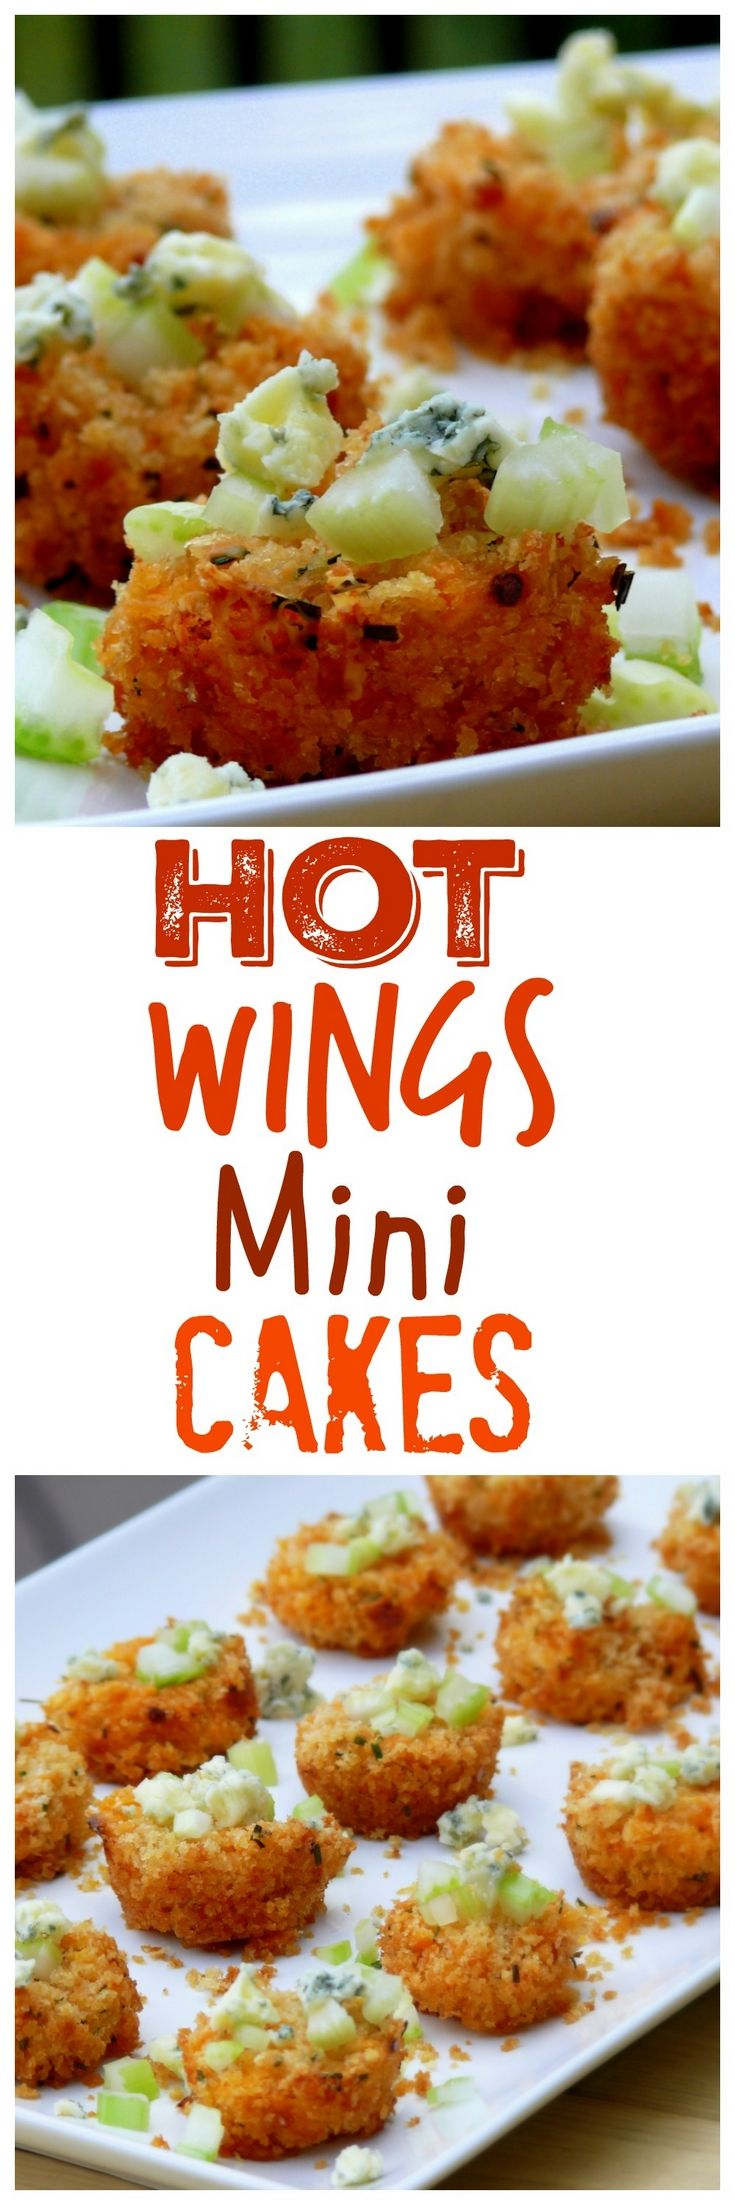 VIDEO + Recipe: HOT WING MINI CAKES are the perfect appetizer bites full of chicken, sauce and all the hot wing goodness. The panko crust emulates the crispy wings you love from NoblePig.com. via @cmpollak1